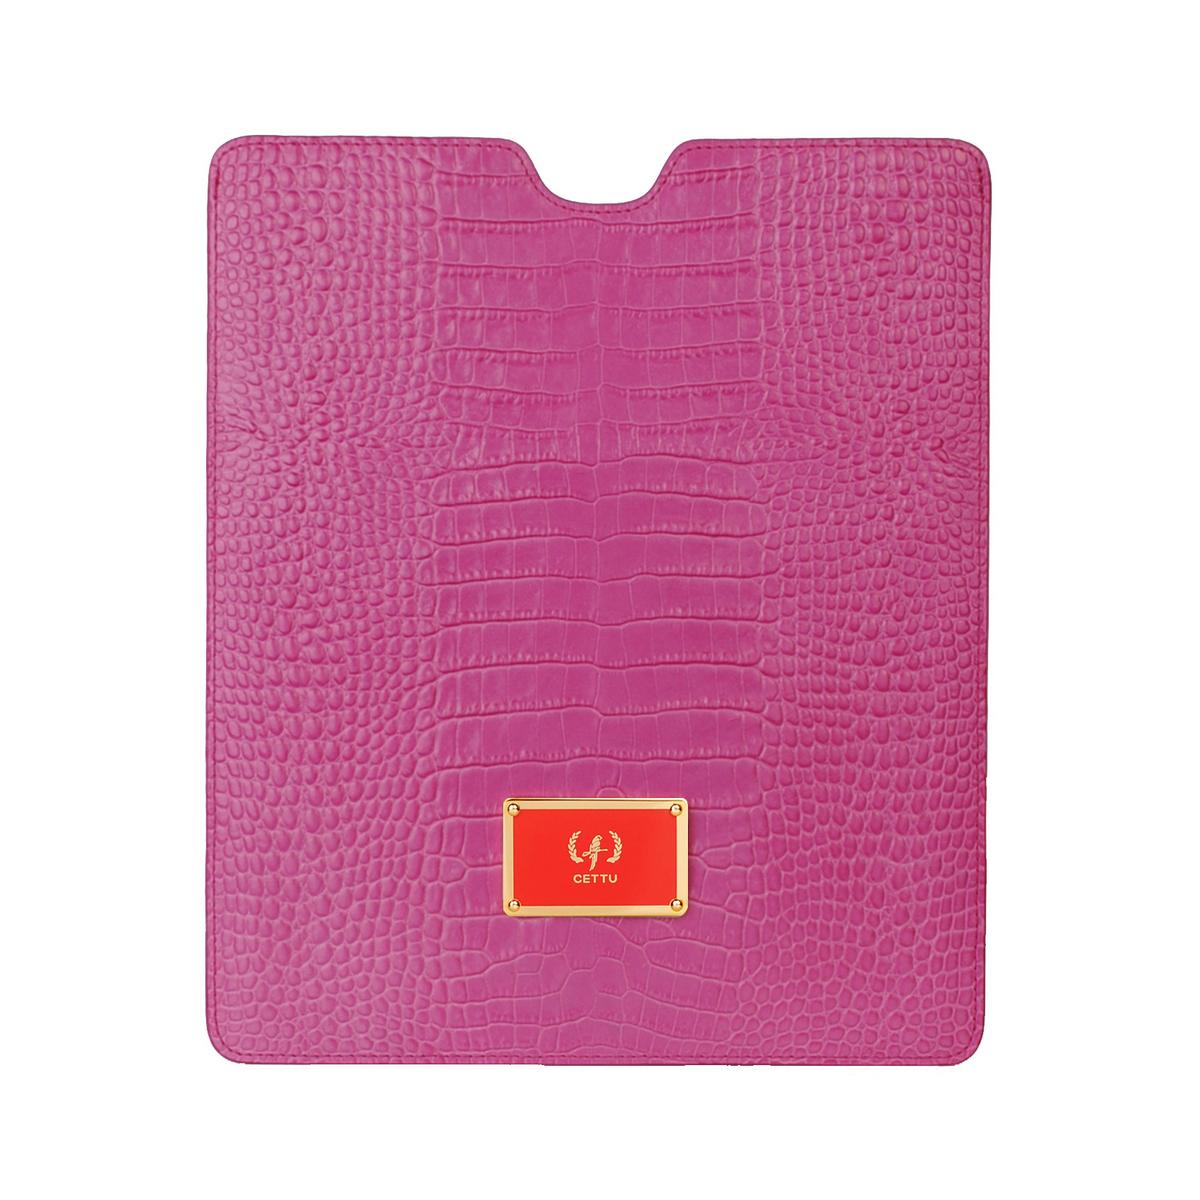 [ACCESSORIES / TECH ] I-PAD CASE 2  (CROCO / FUCHSIA)